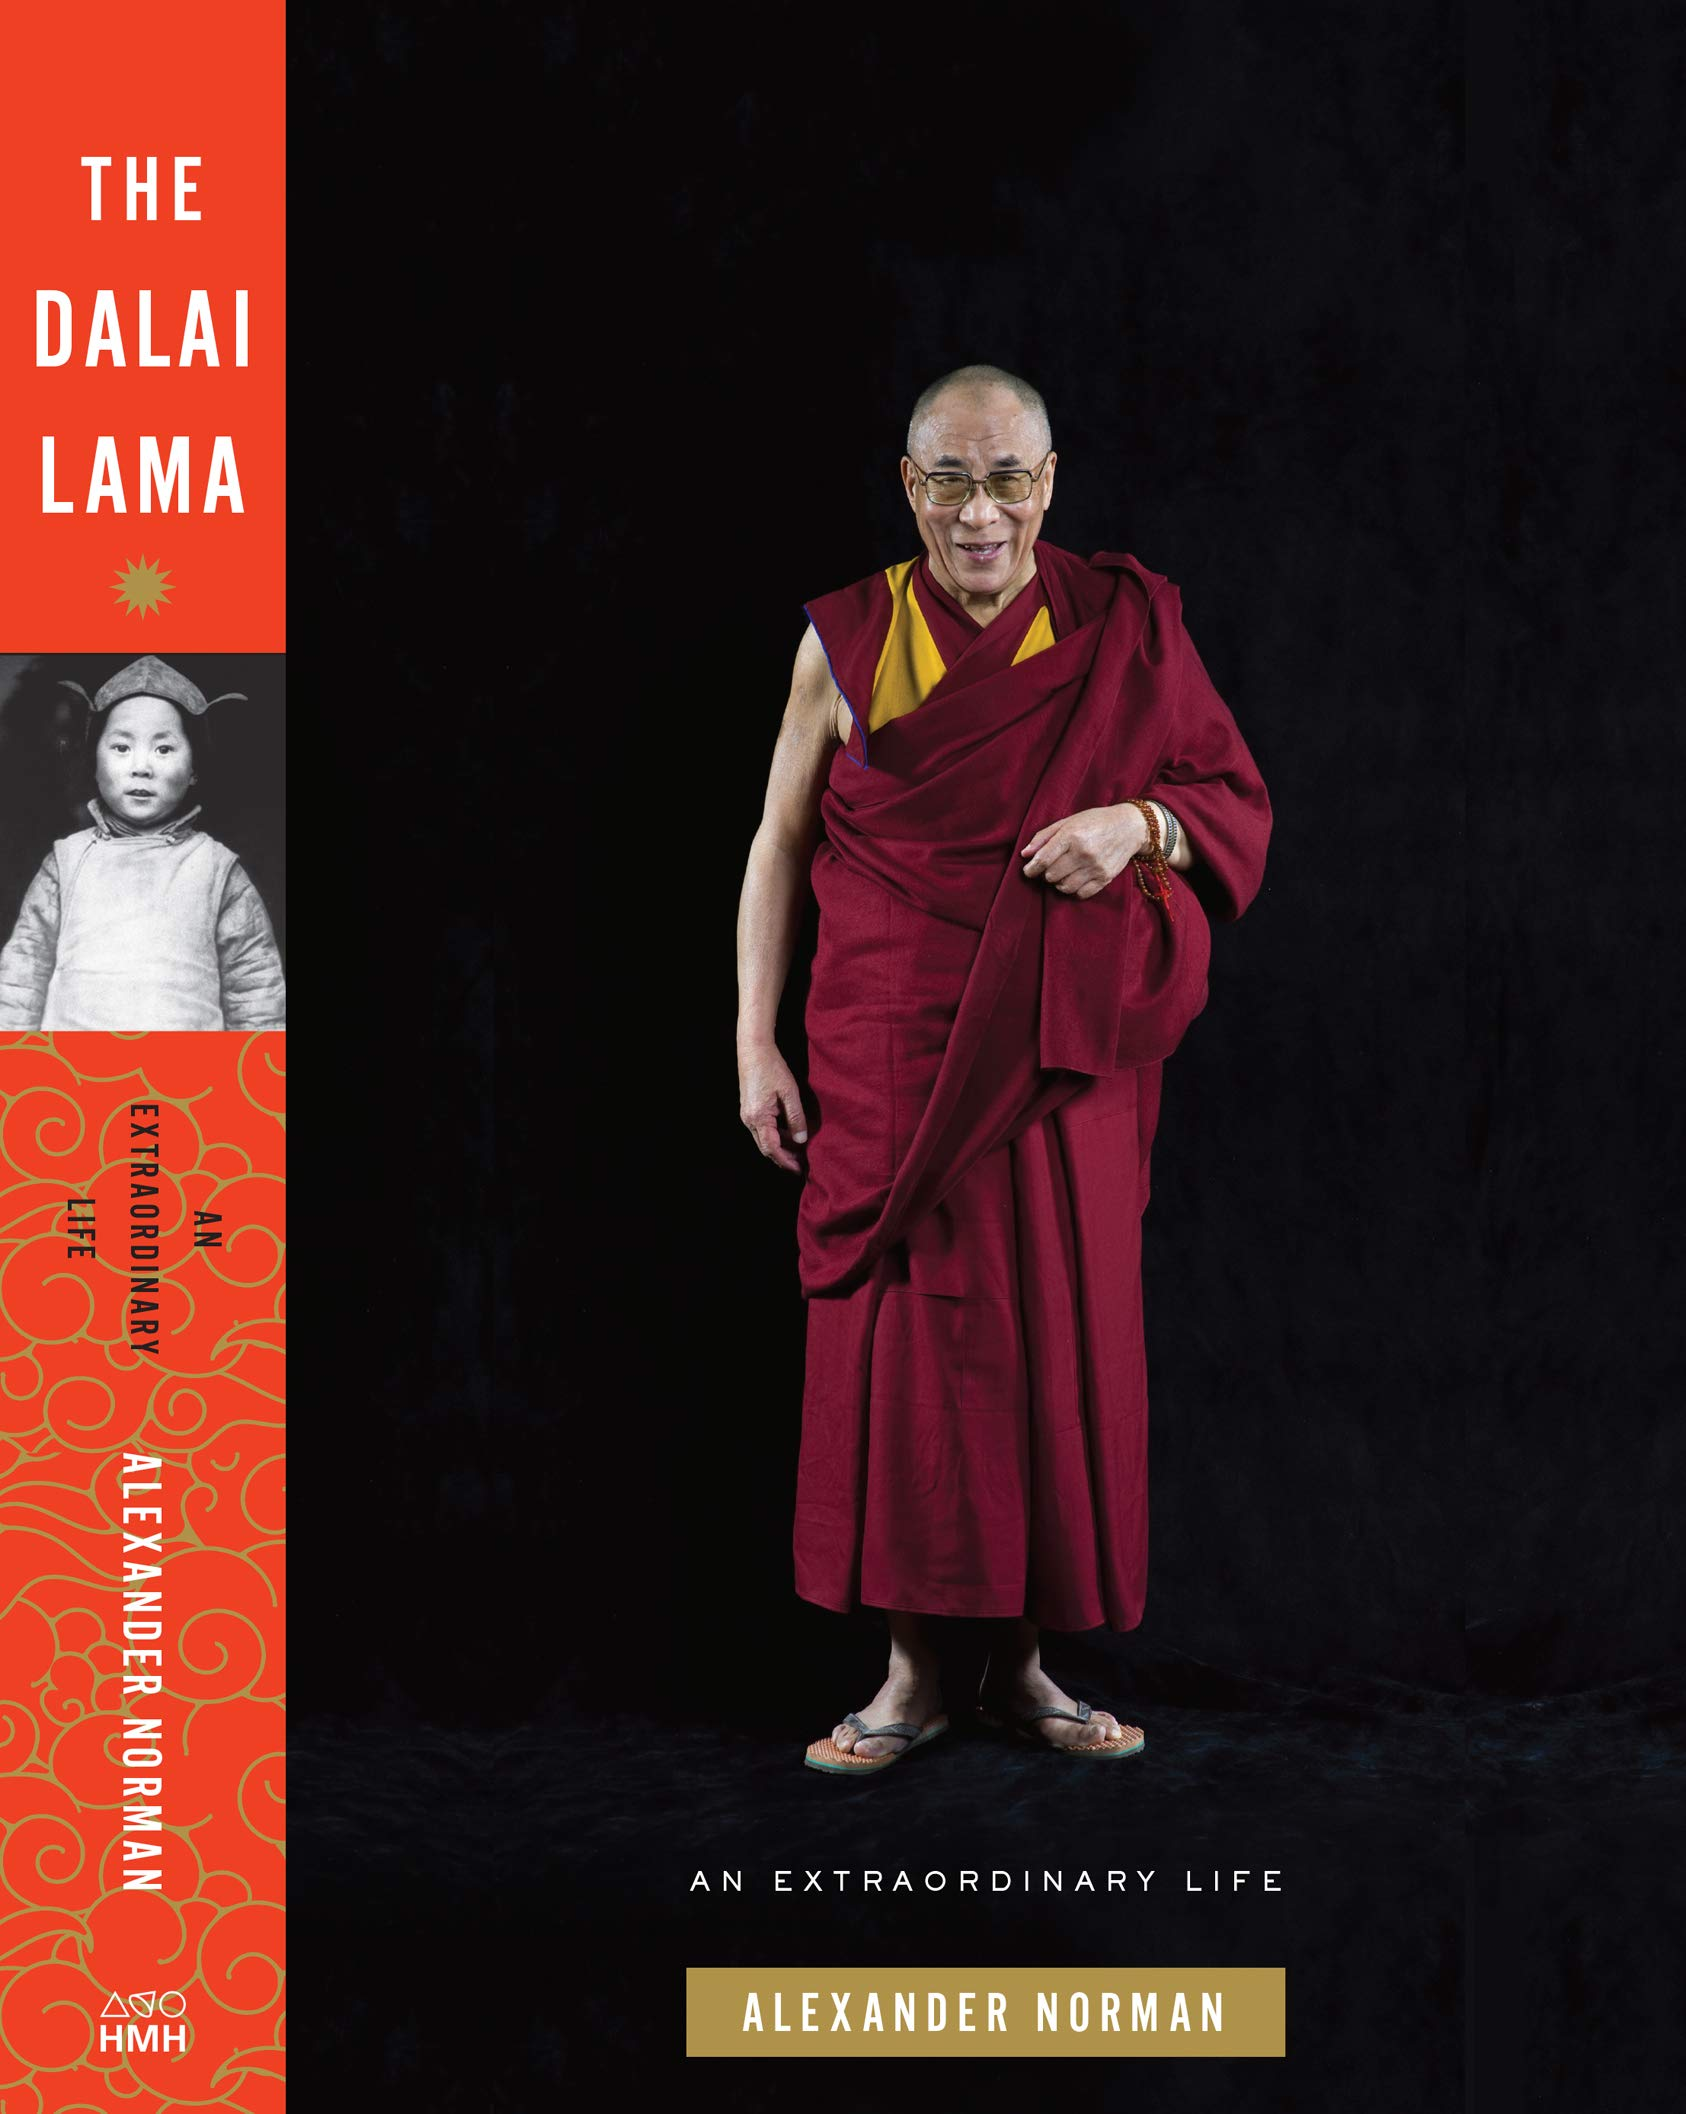 The Dalai Lama An Extraordinary Life Amazon De Norman Alexander Fremdsprachige Bucher